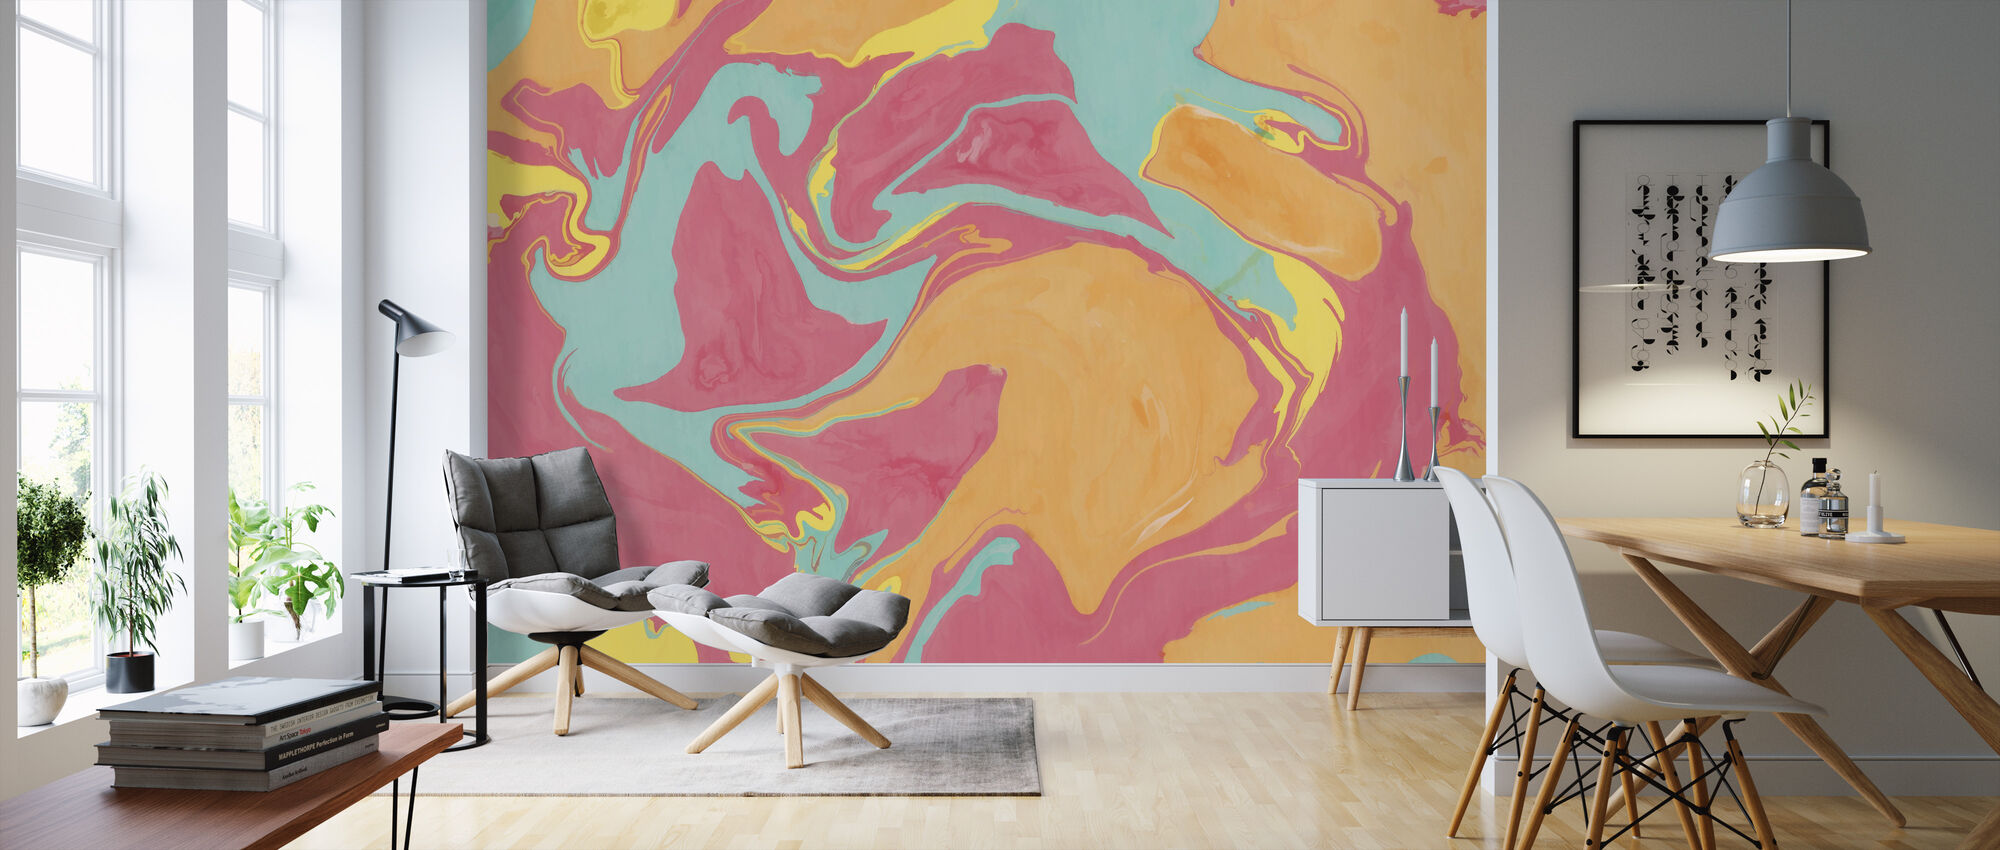 Abstract Marble Paint II - Wallpaper - Living Room